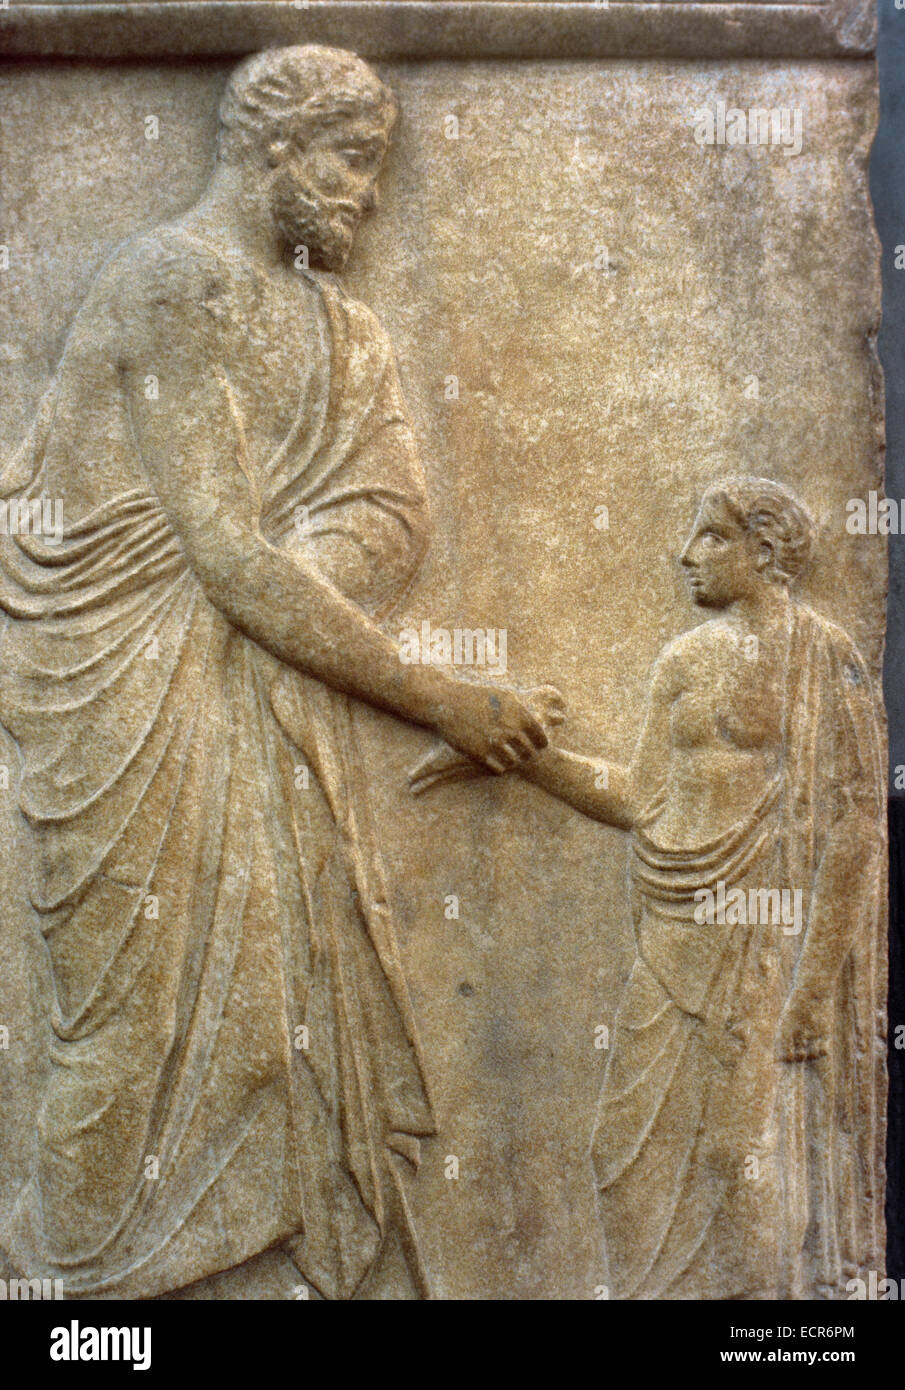 Grave stele stock photos grave stele stock images alamy for Graue stuhle